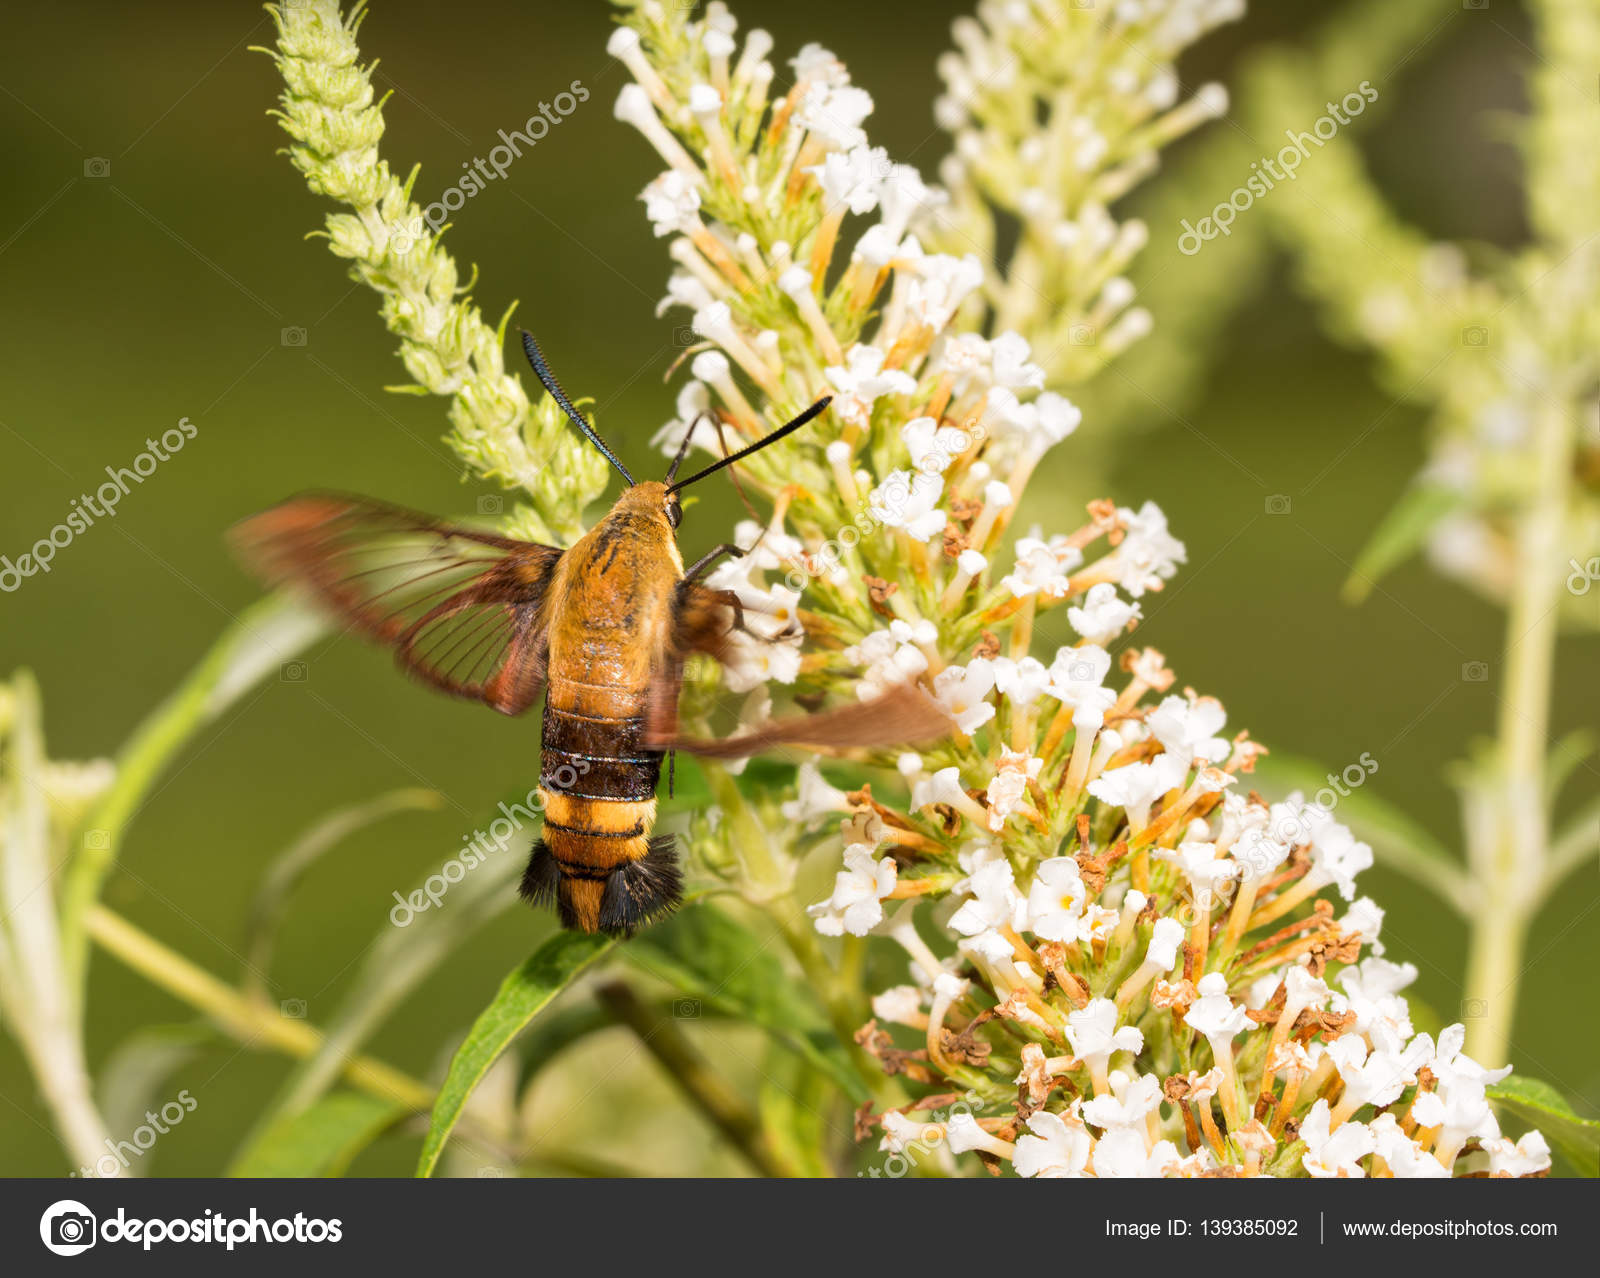 Snowberry Clearwing Moth In Flight Feeding On White Flower Cluster